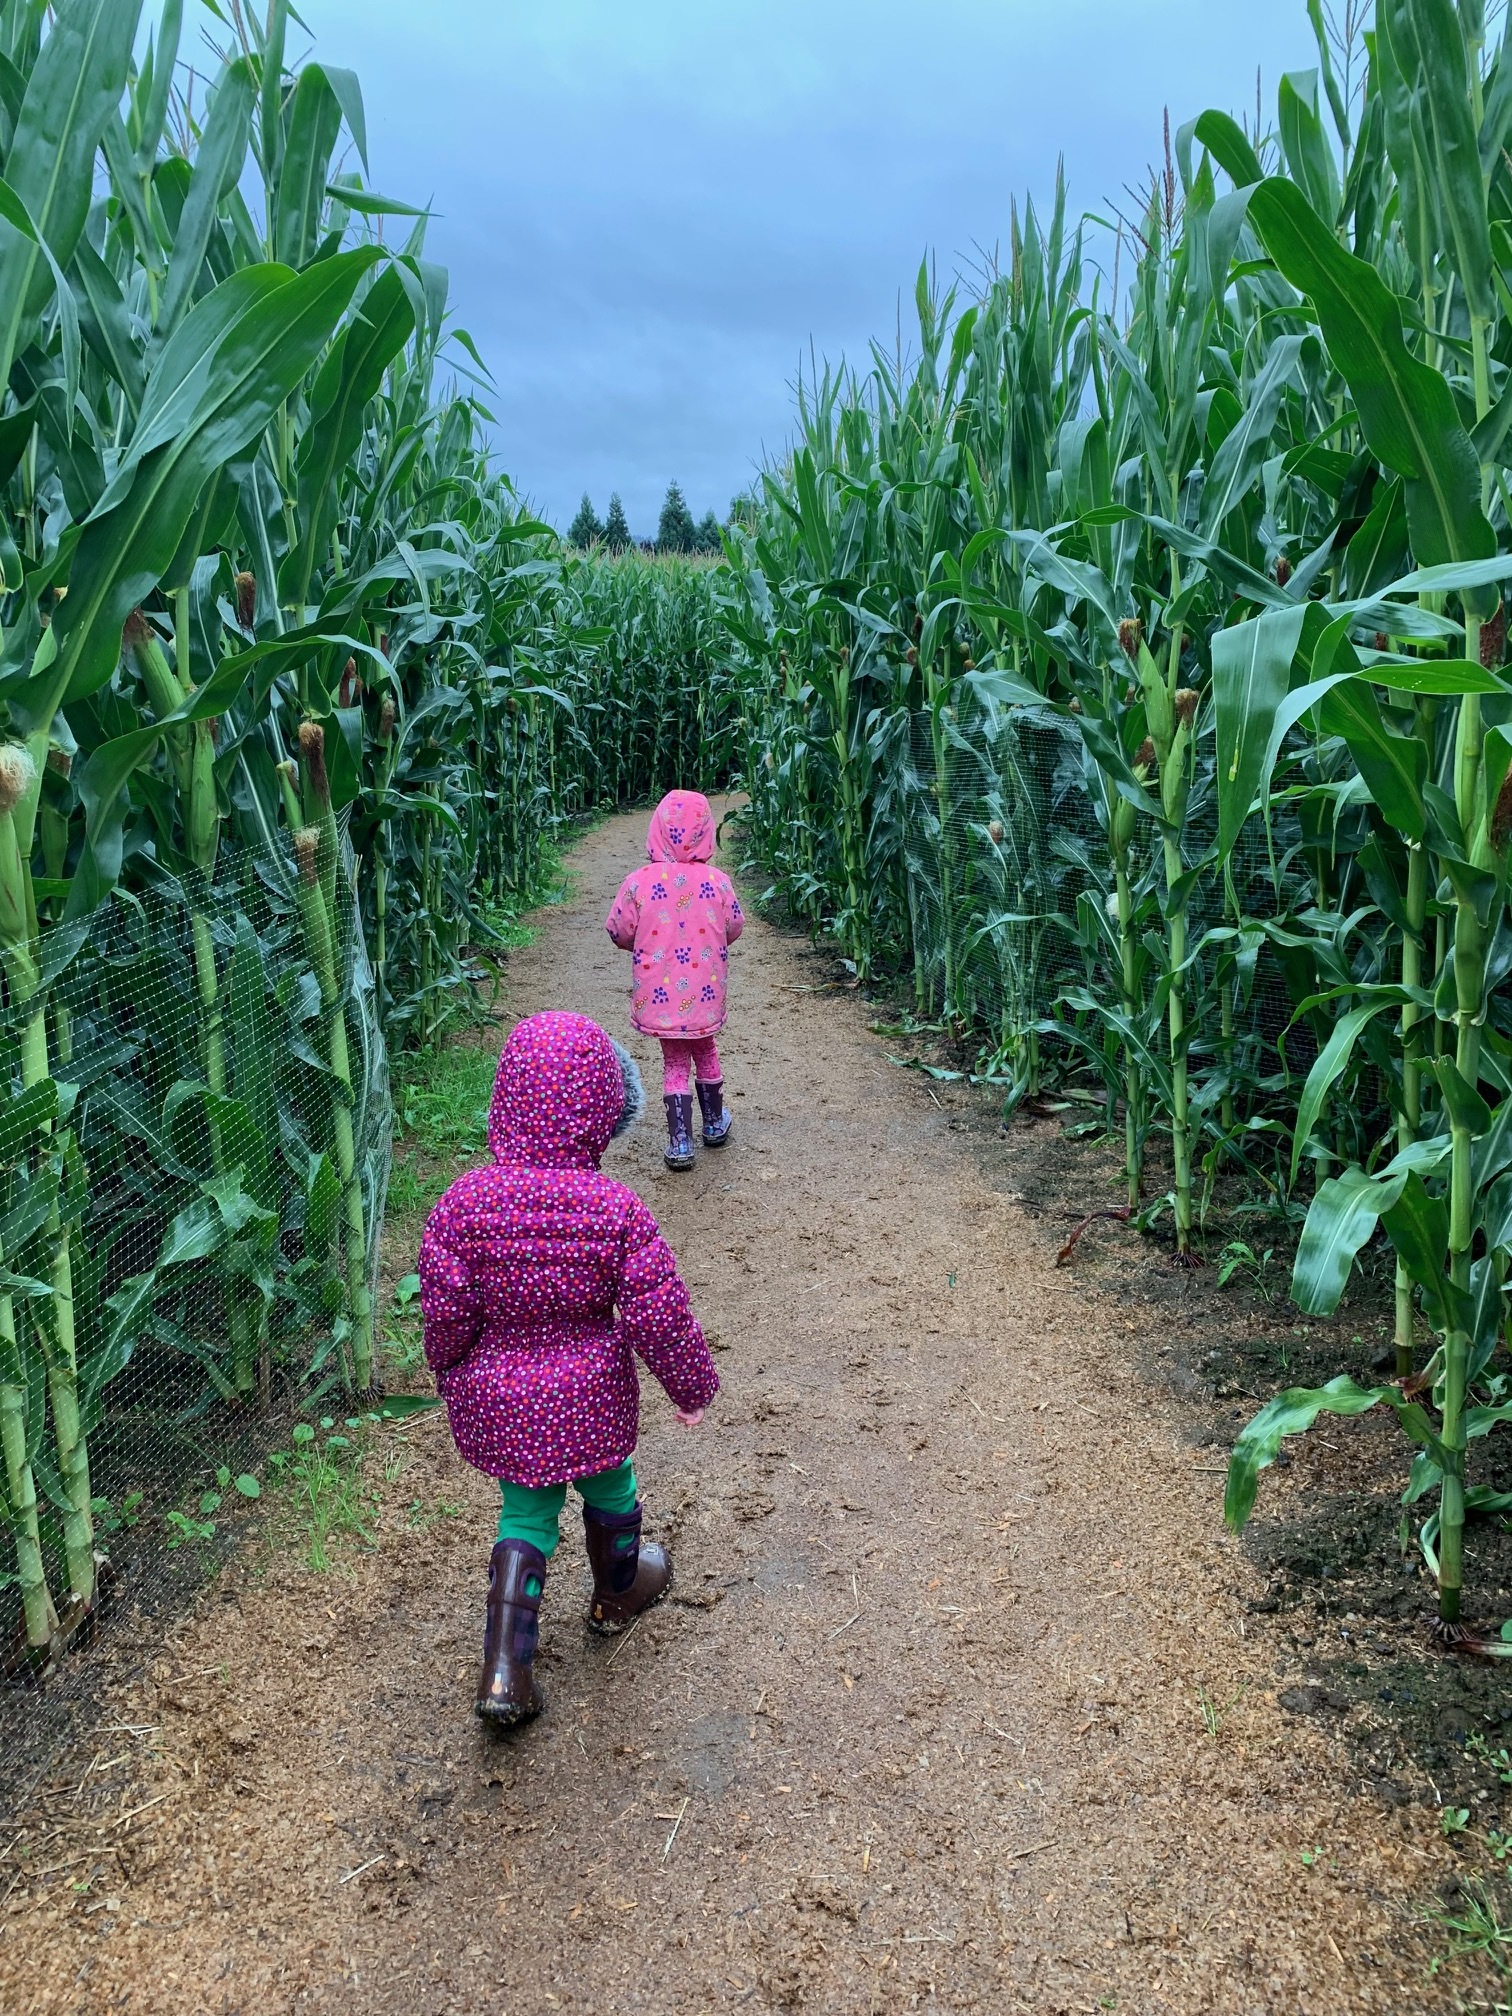 My two little ones headed down the corn maze trail…brave!! Image Courtesy: Dan Meyers